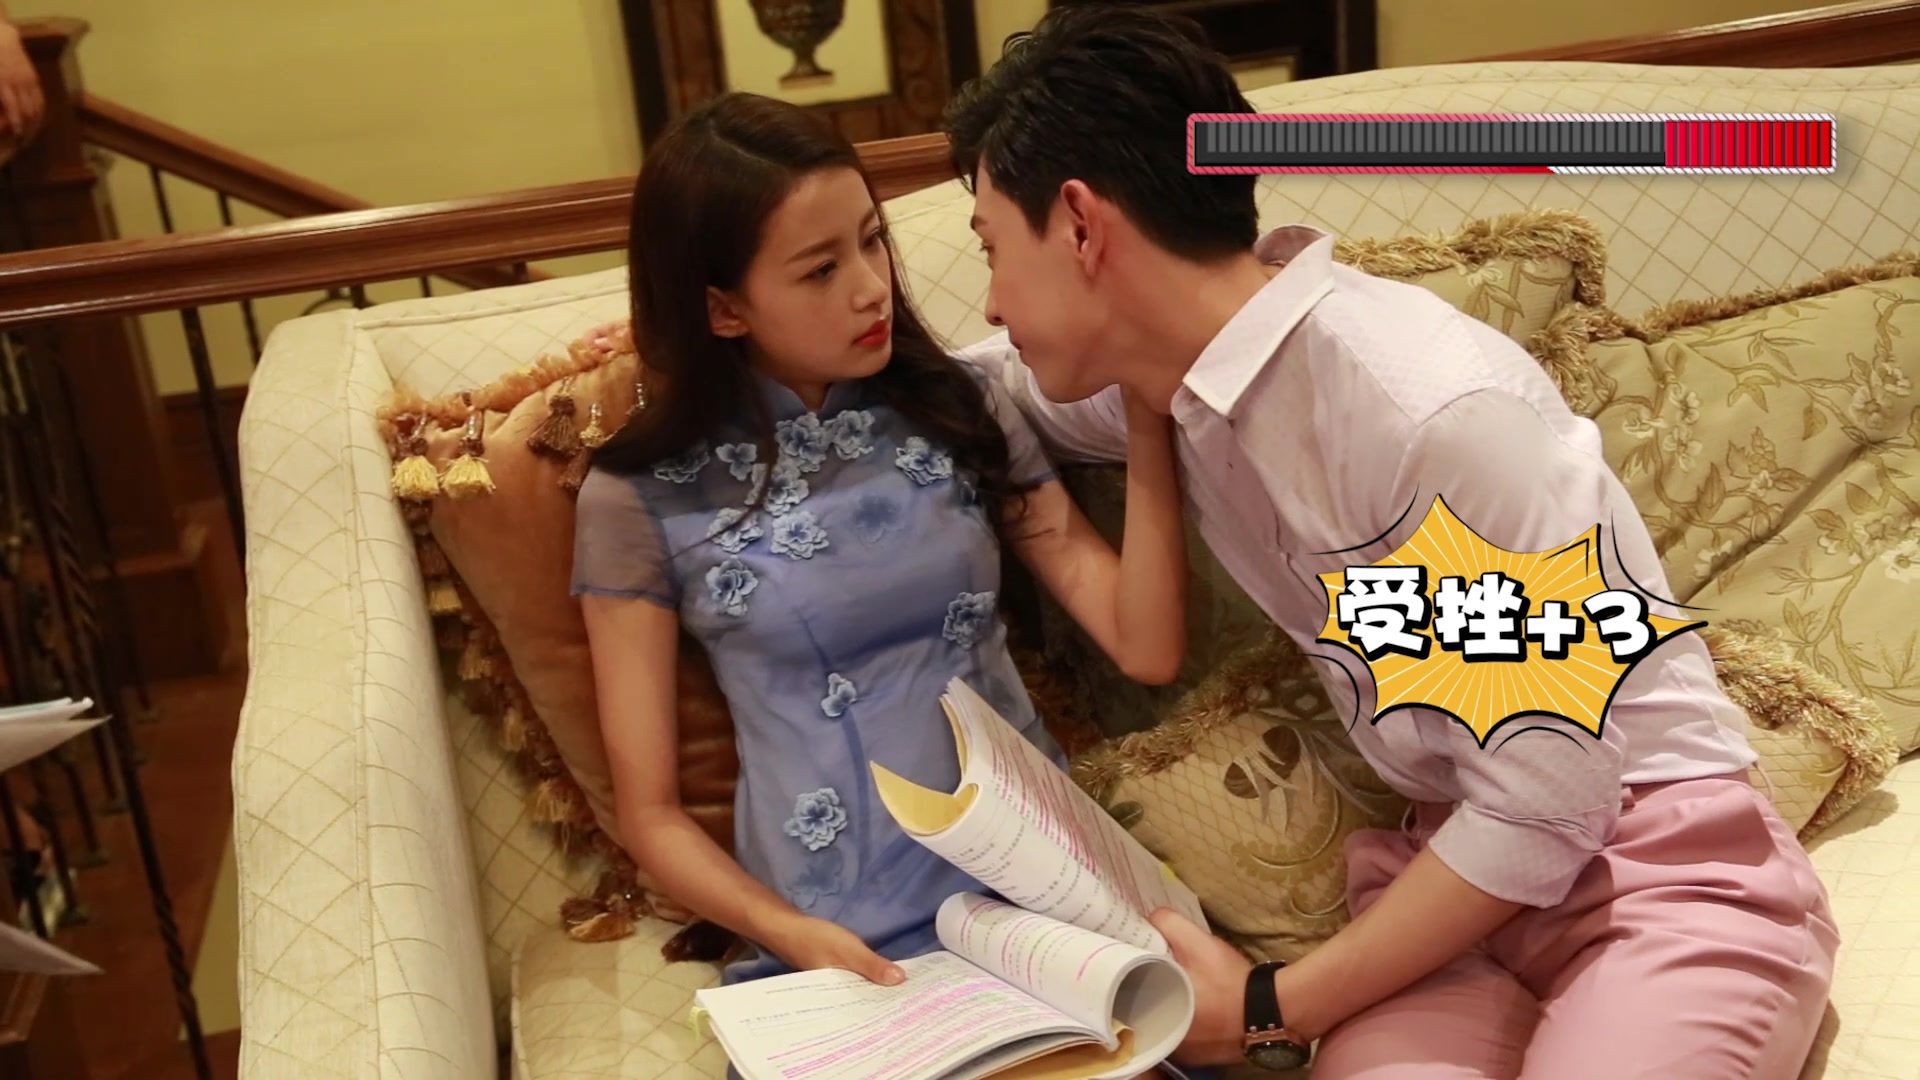 Behind the Scenes Special 2: Because of Meeting You